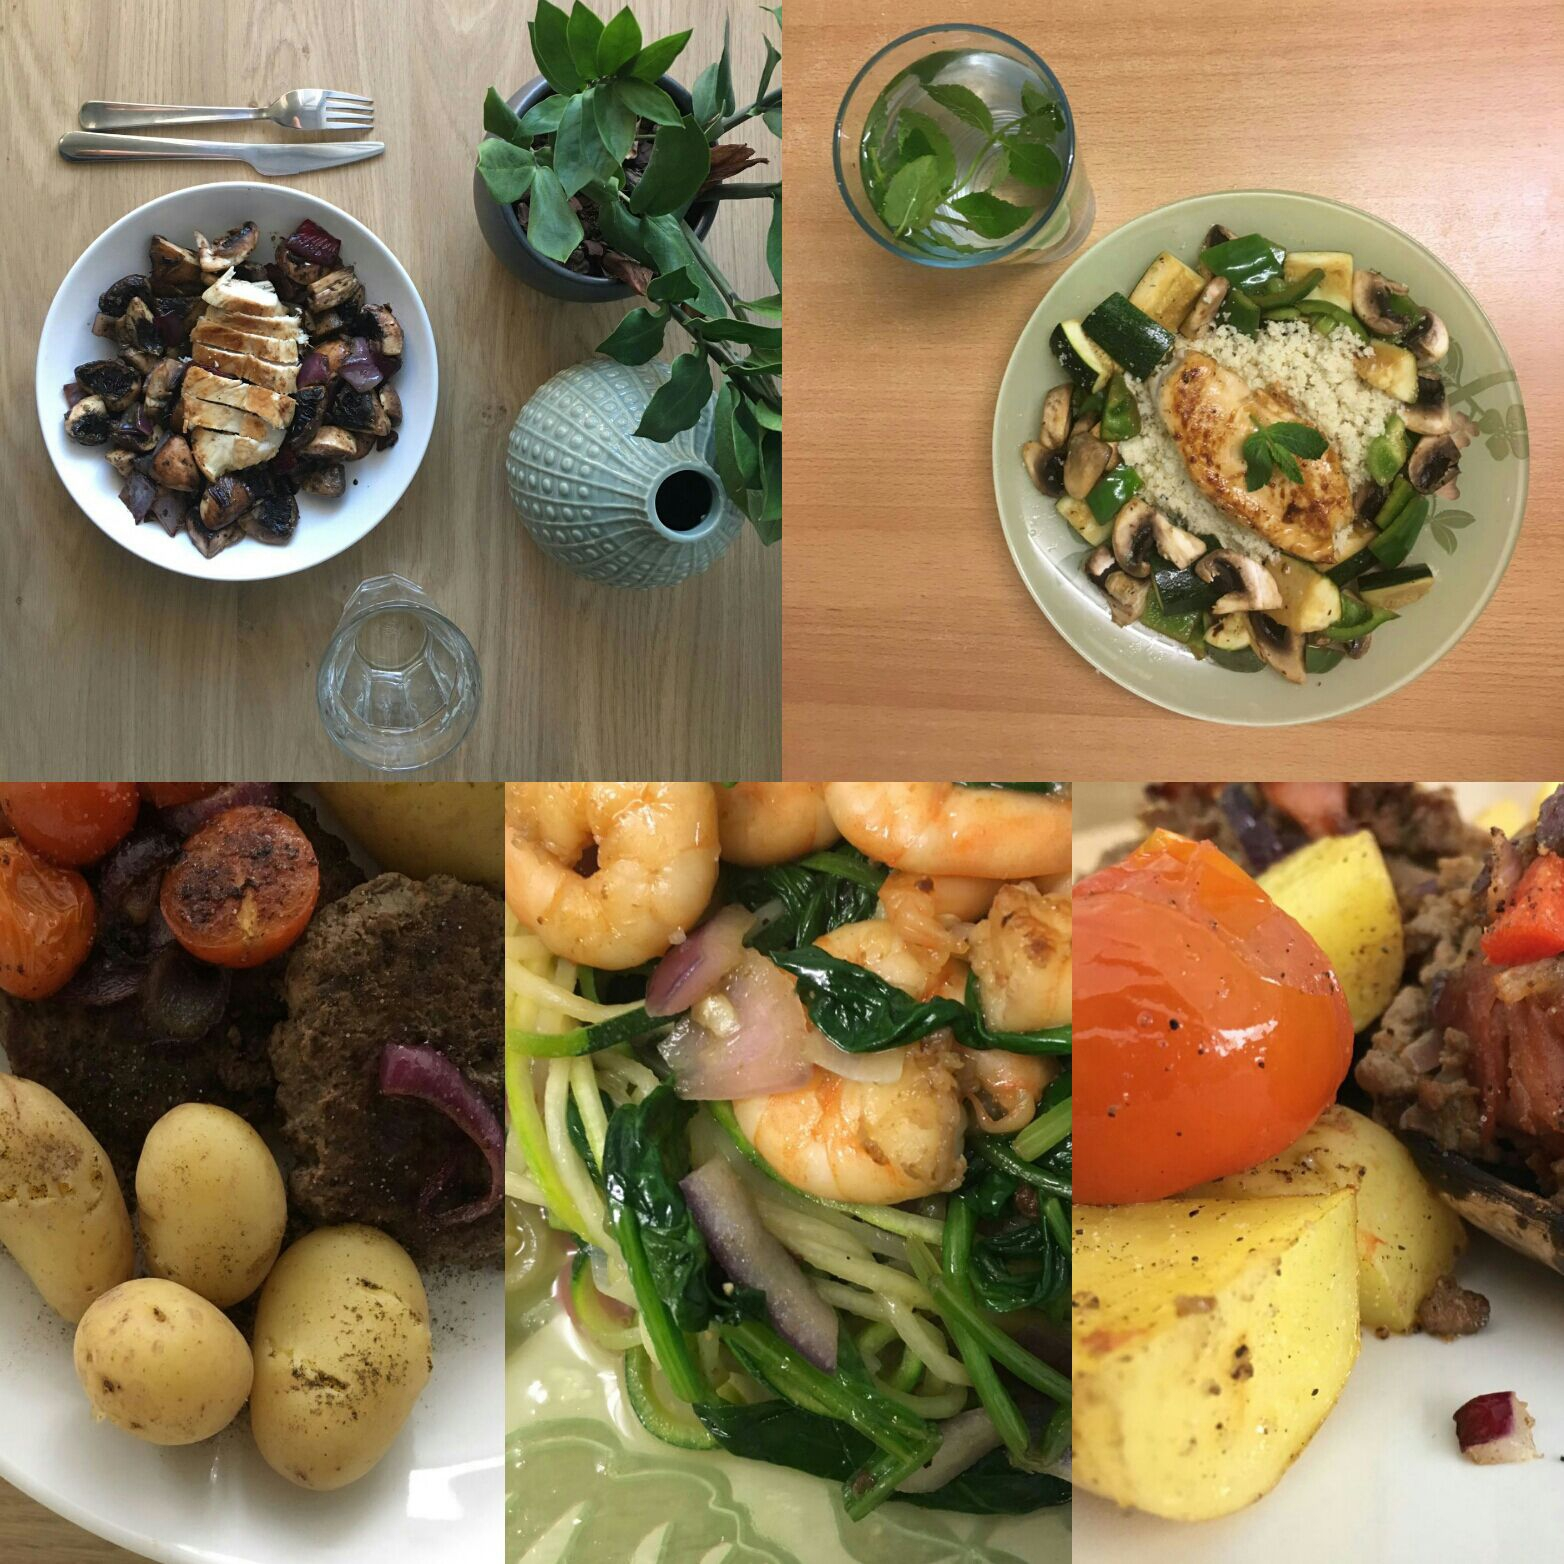 Janouk's Whole30 Challenge: Week 1